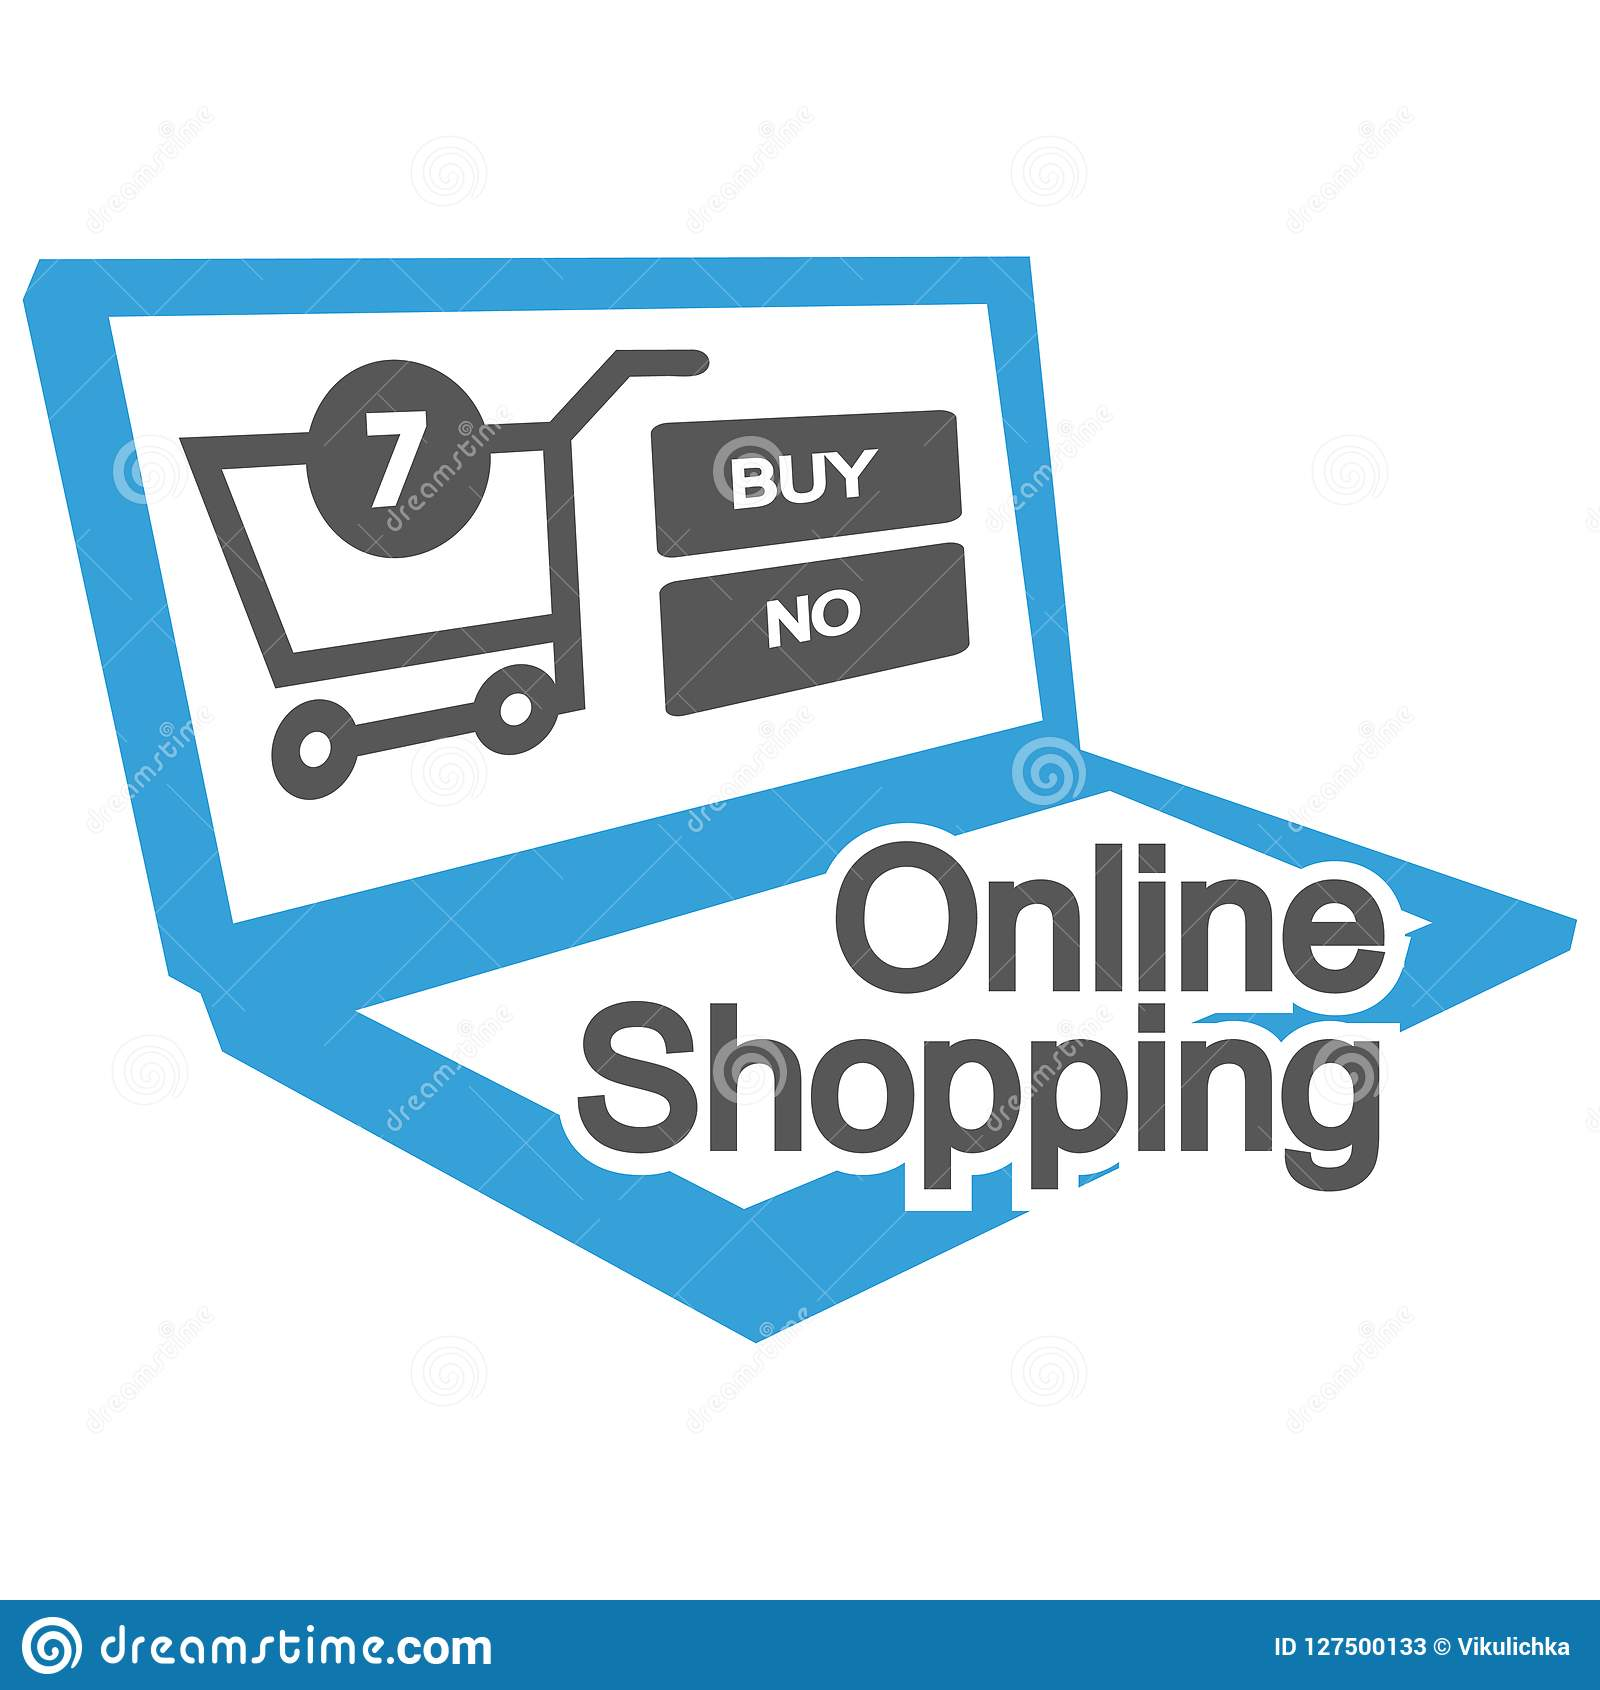 In Shop Online Store Online Shopping Icon Web Shopping Online Shop Label Sale Logo